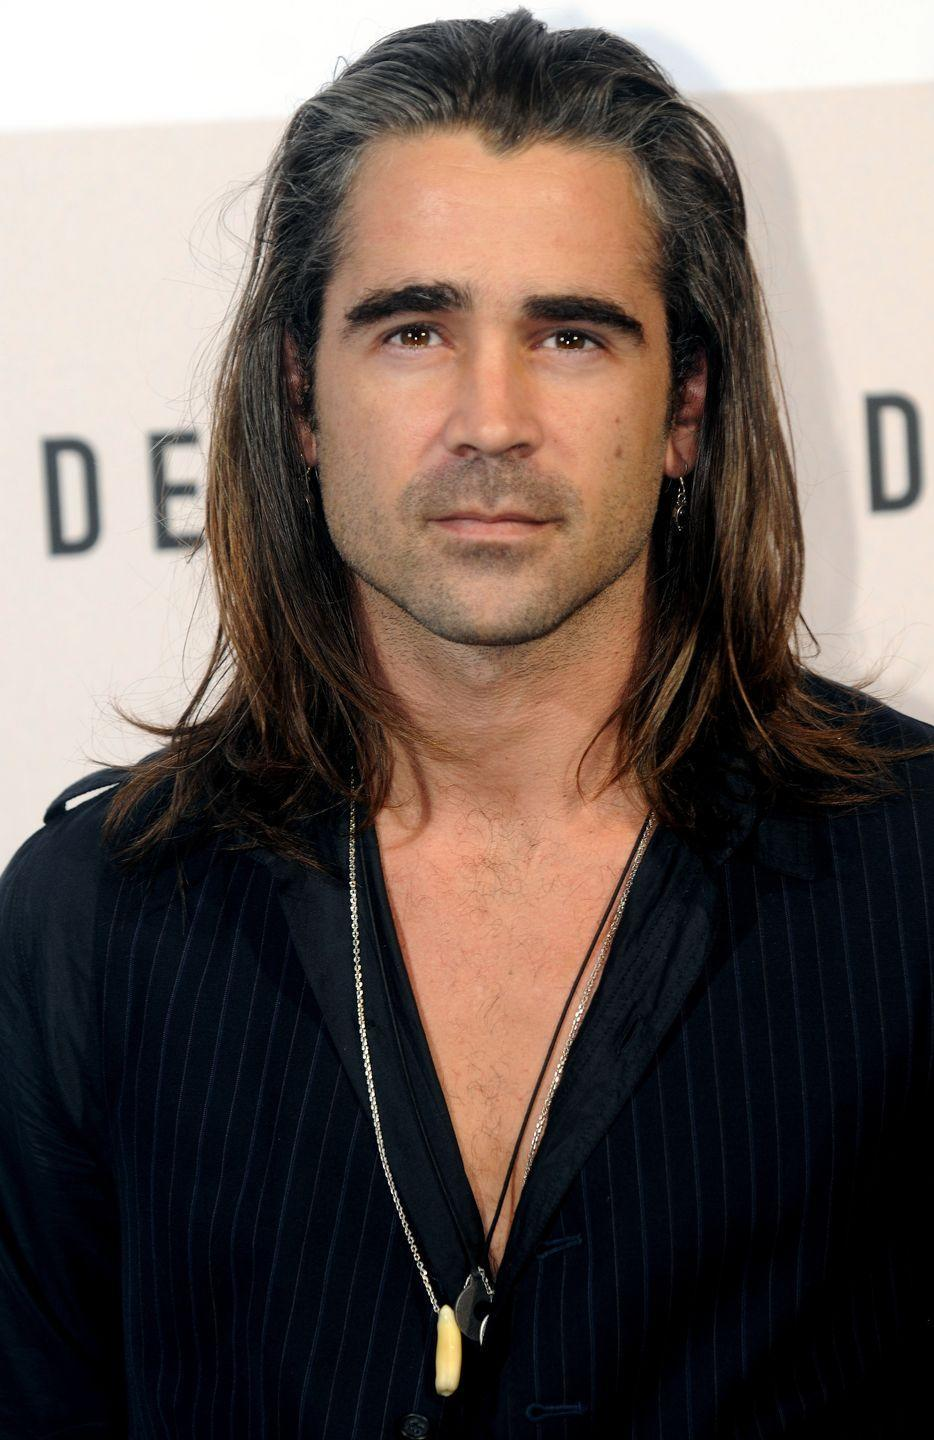 <p>In 2008, Colin Farrell grew out his hair for <em>Pride and Glory. </em>But it wasn't the first time the actor changed his hair for a role. In 2003, Farrell completely shaved his head for <em>Daredevil. </em></p>